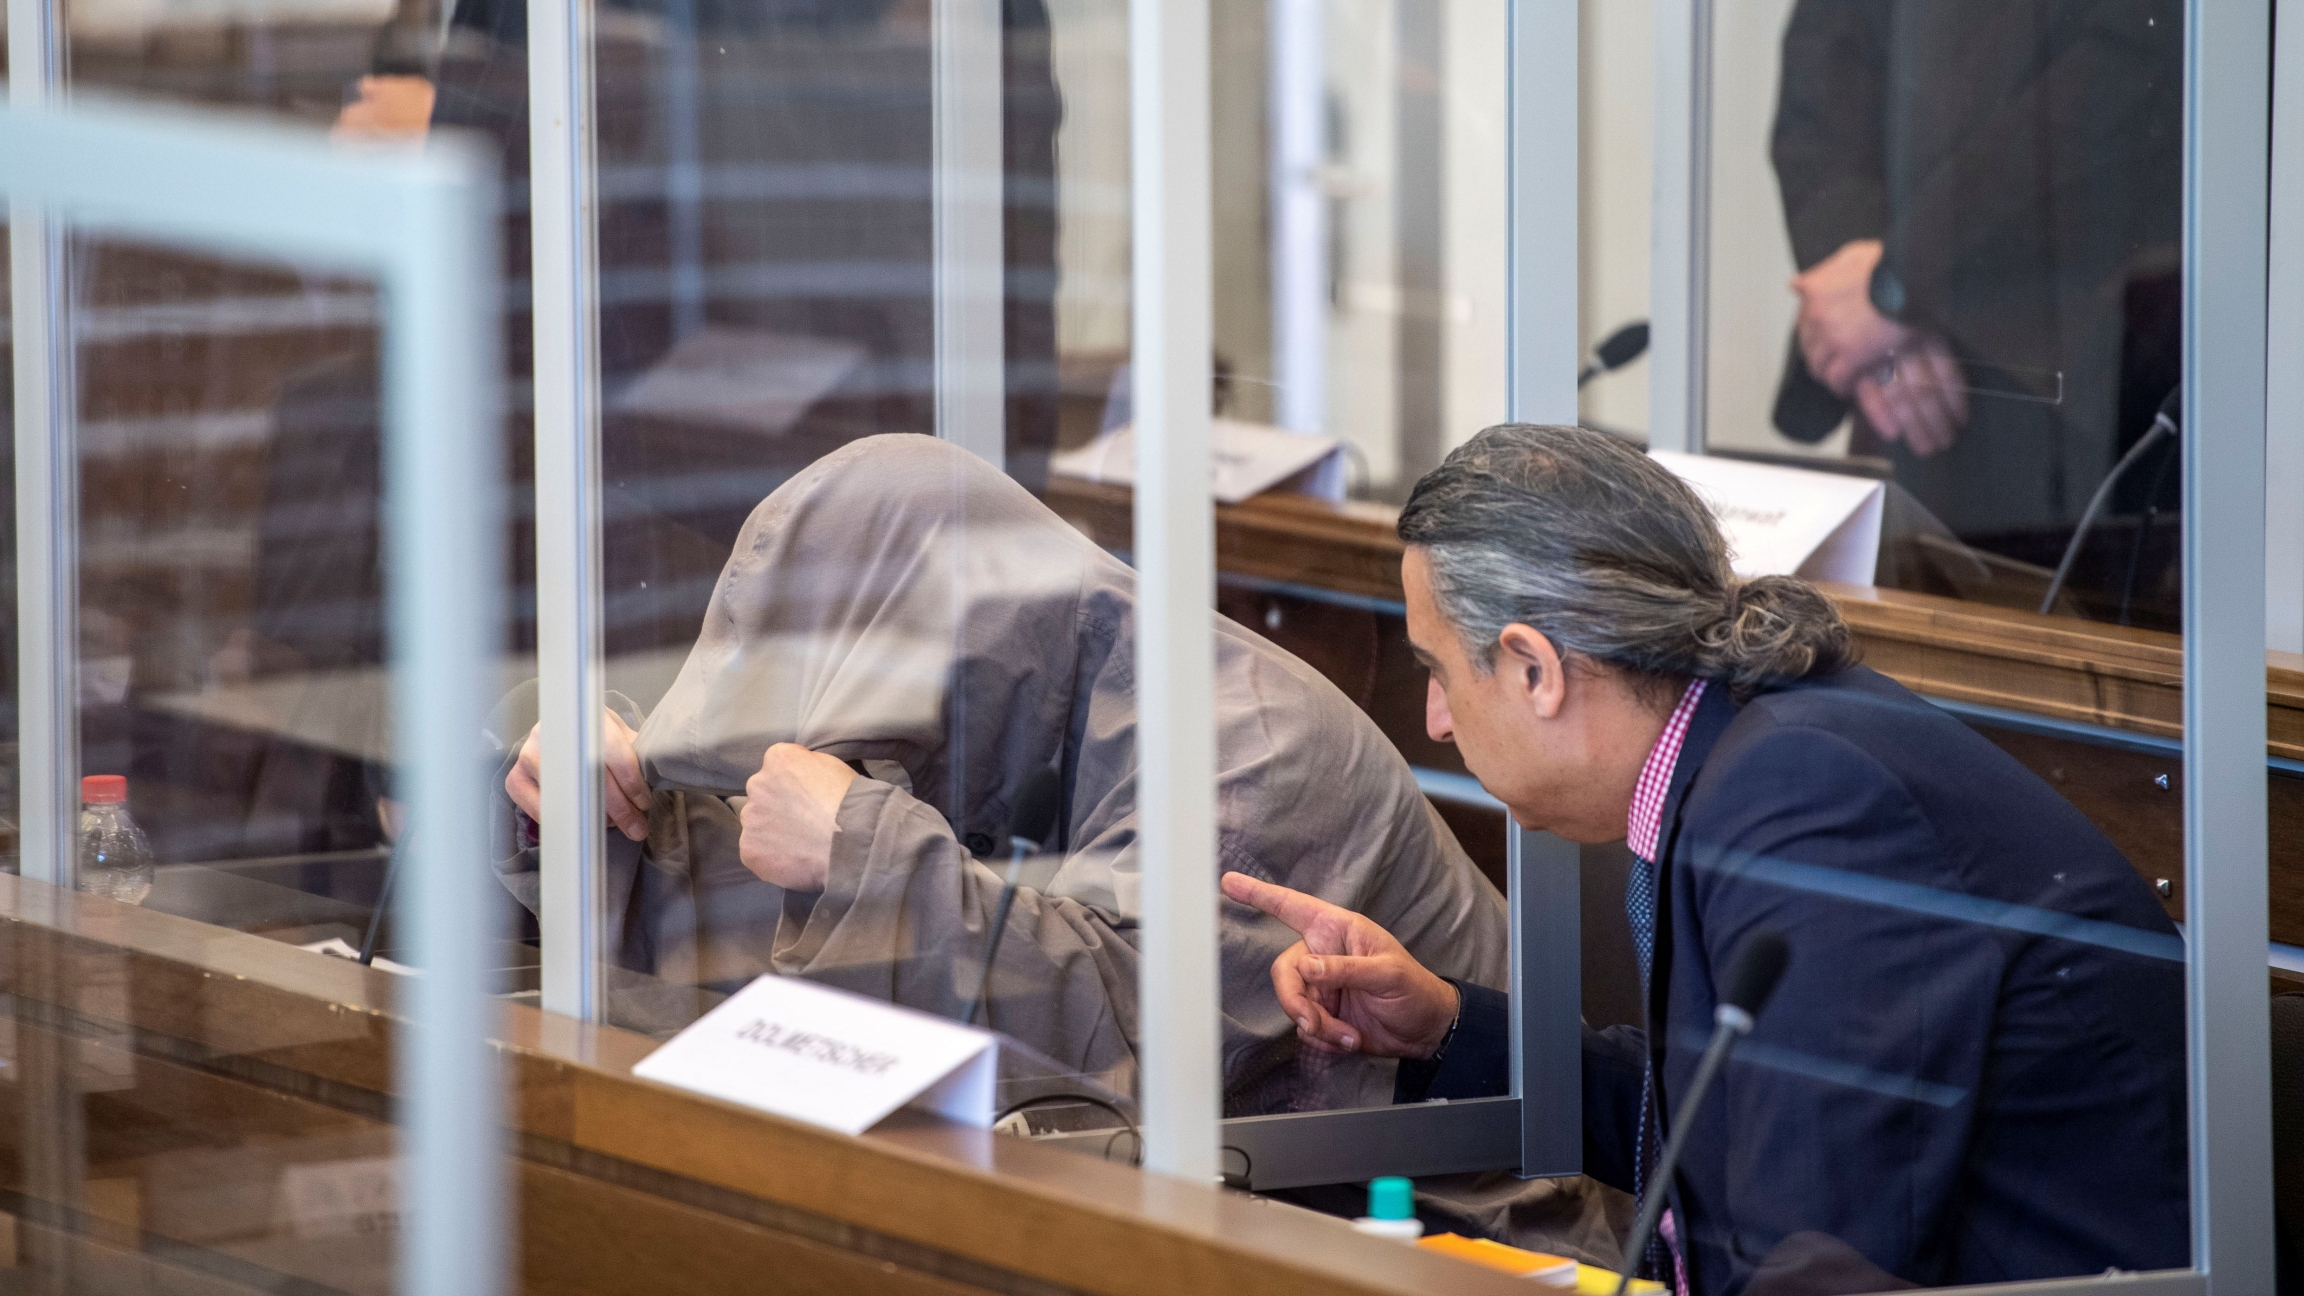 Syriandefendant Eyad A. hides himself under his hood prior to the first trial of suspected members ofSyrianPresident Bashar al-Assad's security services for crimes against humanity, in Koblenz,Germany, April 23, 2020.